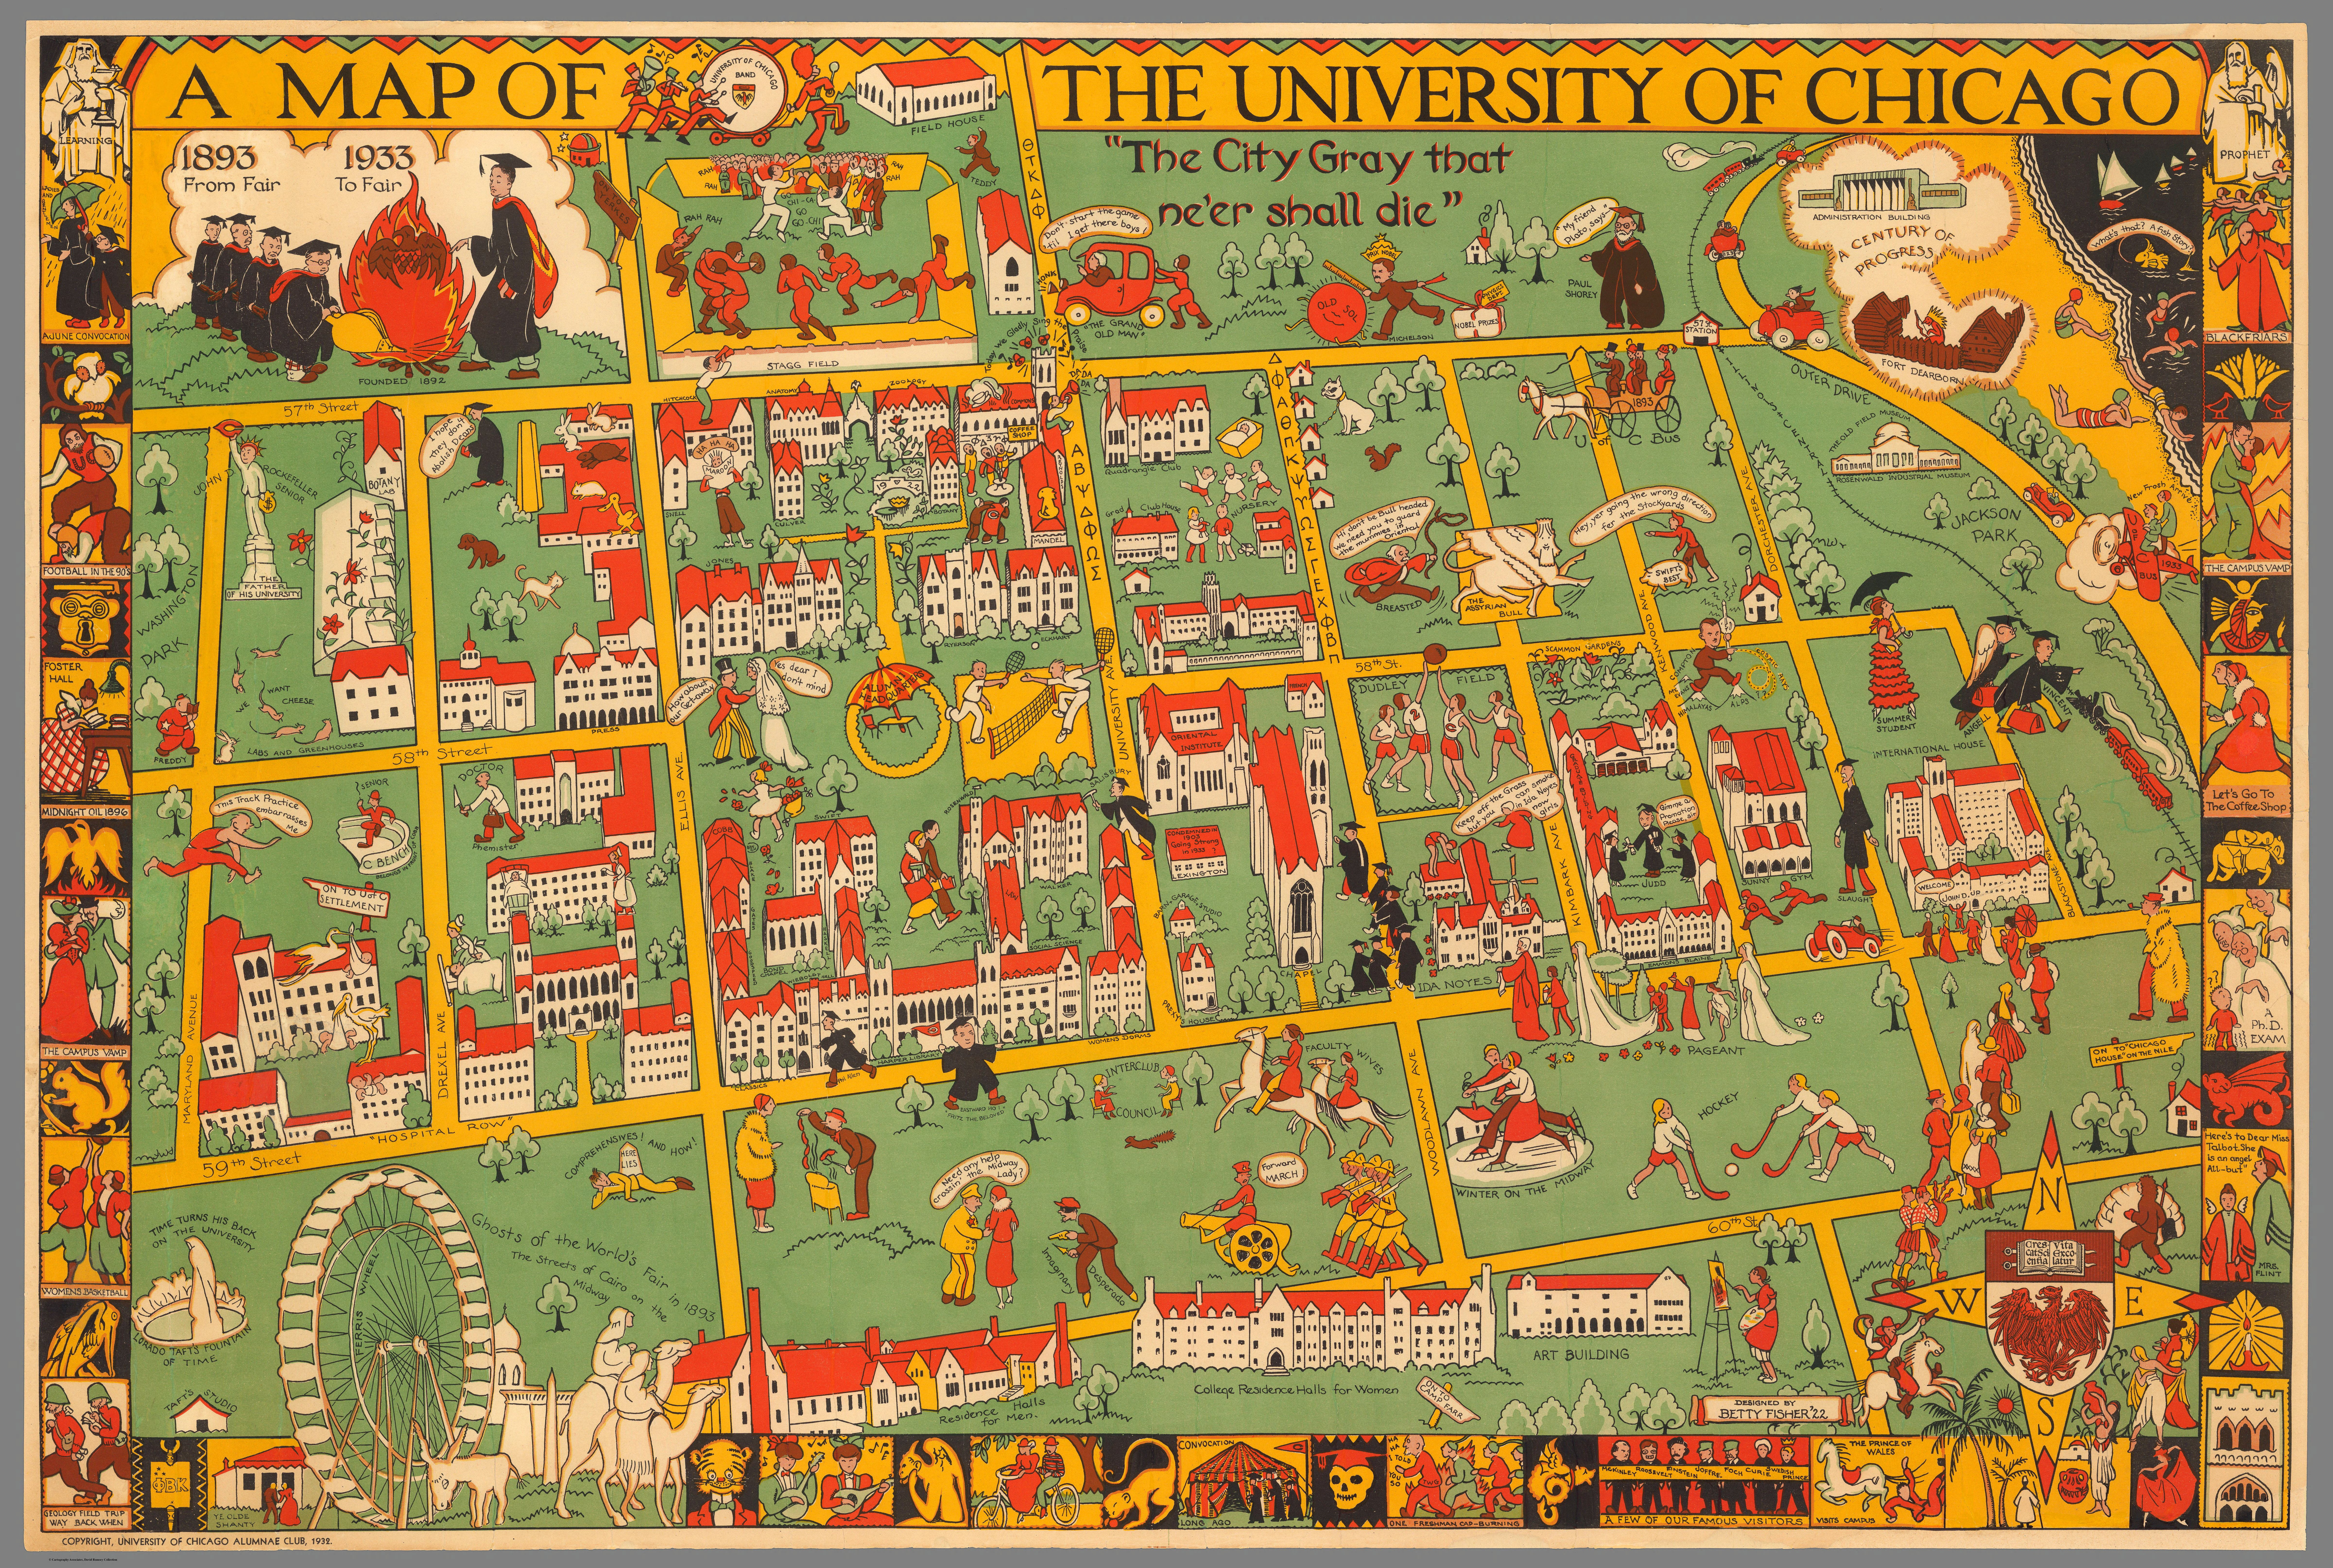 Uchicago Campus Map Putting it all on the map | The University of Chicago Magazine Uchicago Campus Map